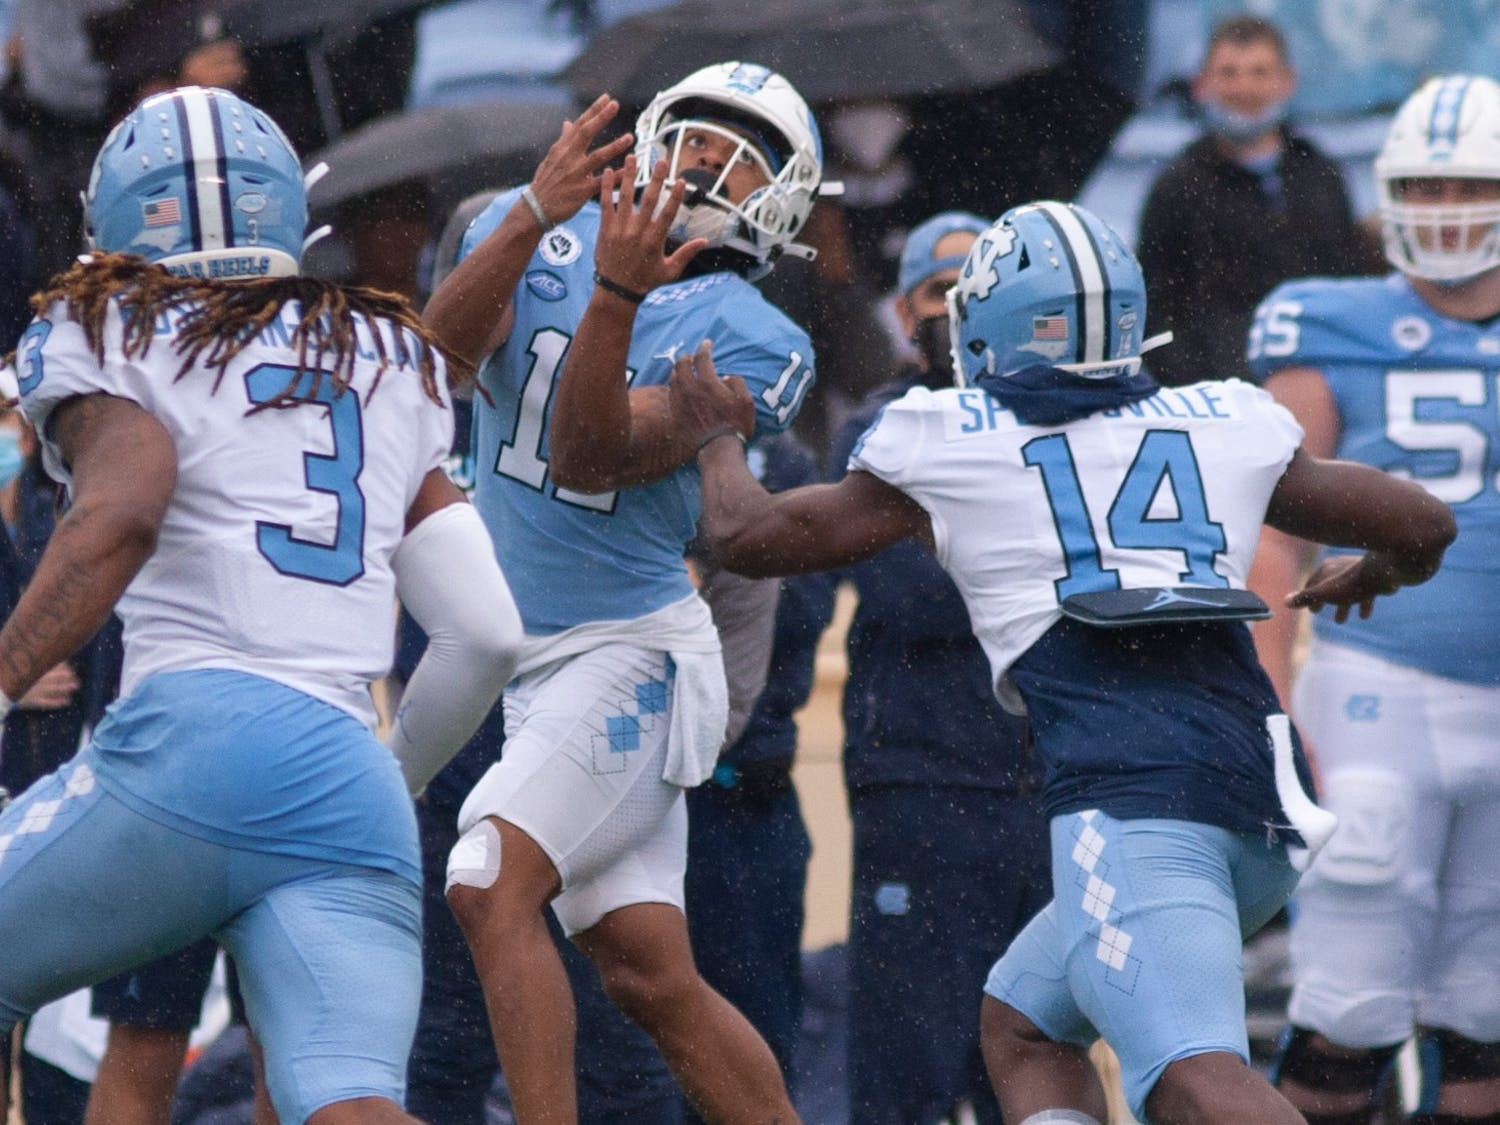 On April 24th, UNC football took the Kenan Stadium field for the first time in 2021 for its annual Spring exhibition game.